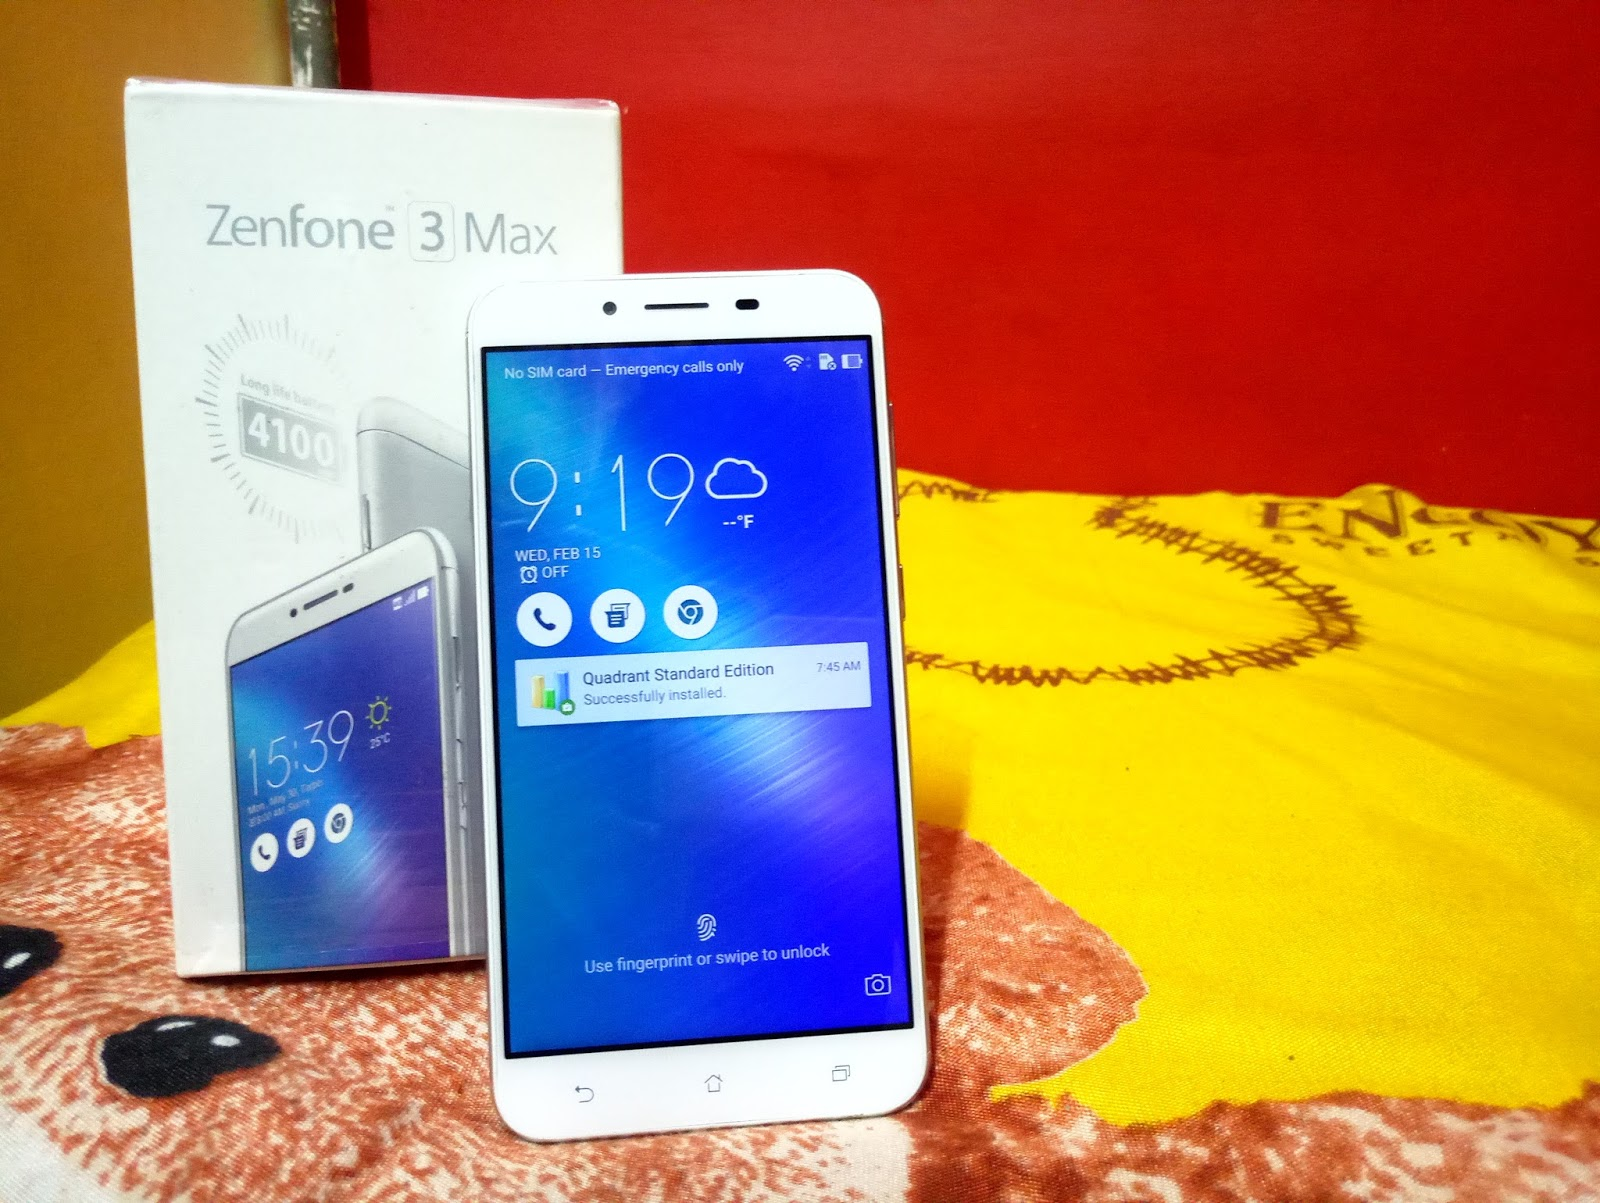 Asus Zenfone 3 Maxzc553kl Hands On Review The Nerd Tech Max 32gb Grey Includes Full Metal Frame With Smooth Finish Back Way In Which Camera Sensor Dual Tone Led Flash Laser Auto Focus Makes It